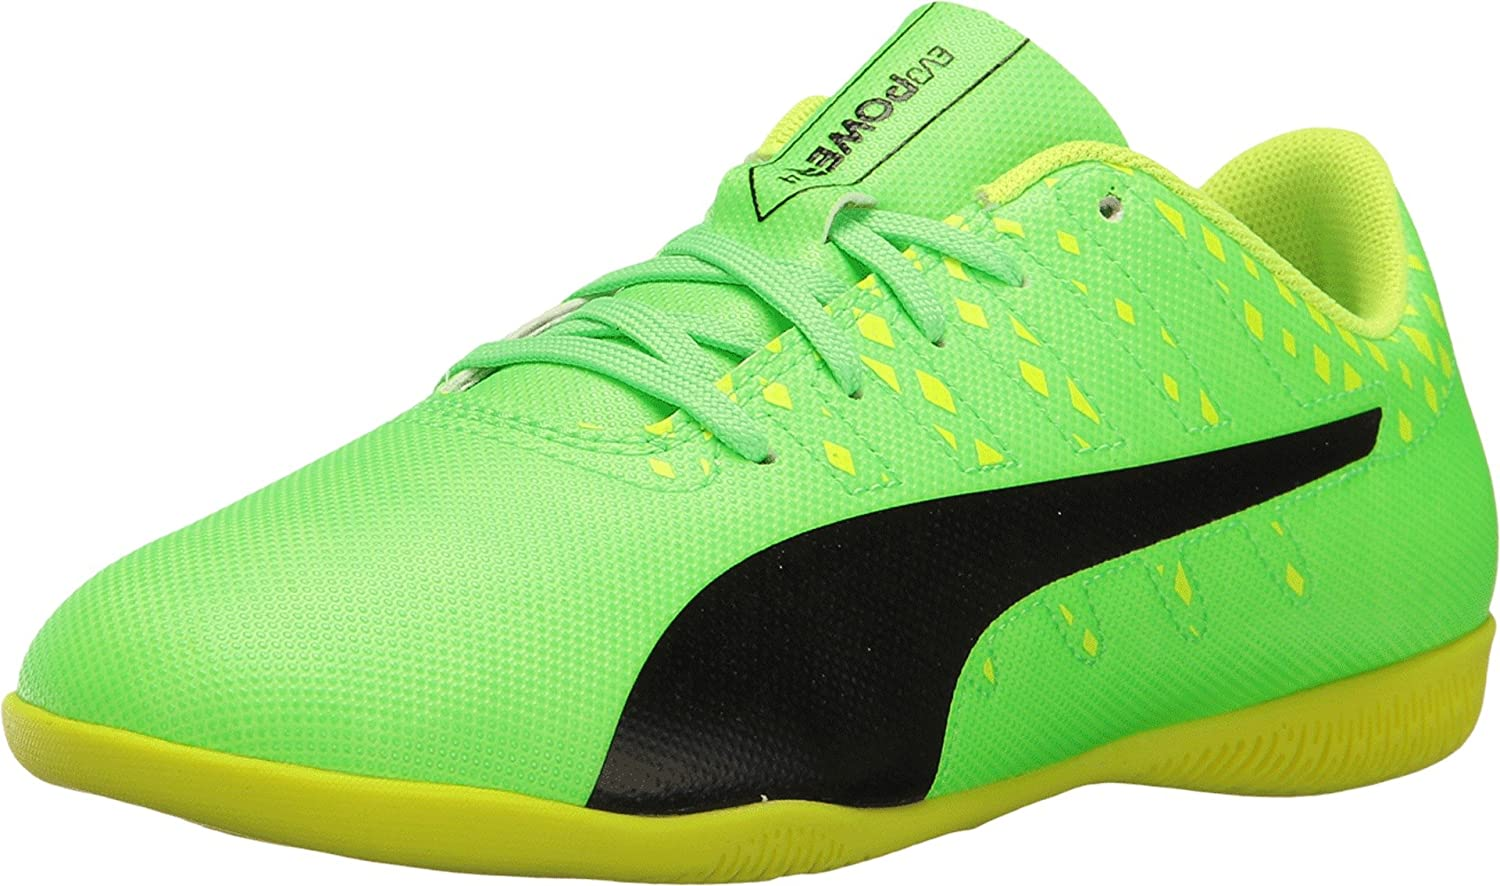 55178fcf004 Puma Kids Unisex Evopower Vigor 4 IT Jr Soccer (Little Kid Big Kid) Green  Gecko Puma Black Safety Yellow Oxford  Buy Online at Low Prices in India -  Amazon. ...